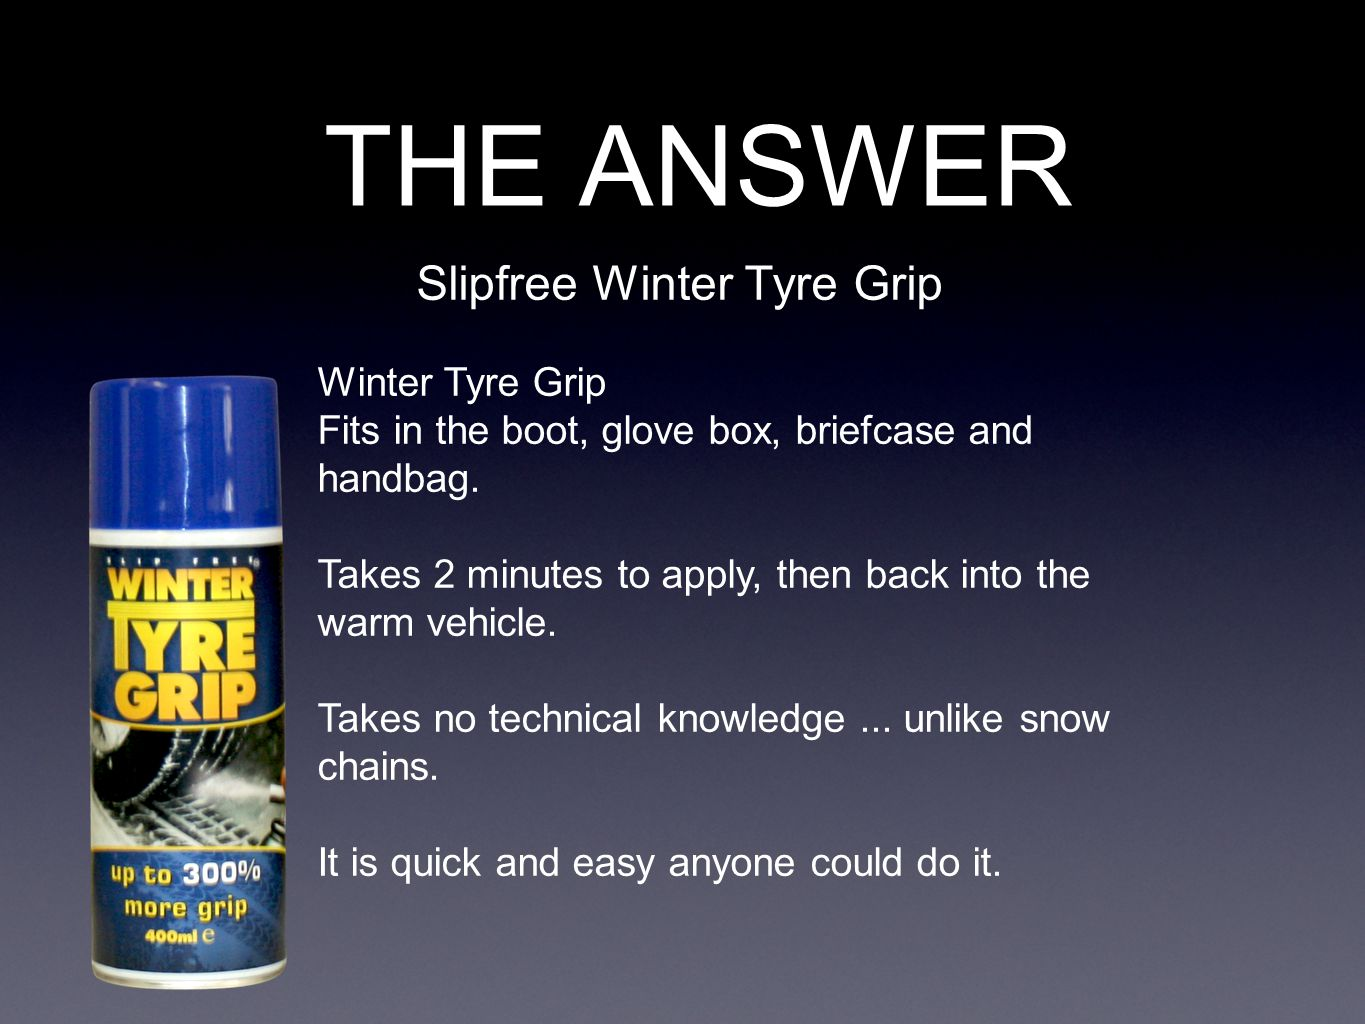 THE ANSWER Slipfree Winter Tyre Grip Winter Tyre Grip Fits in the boot, glove box, briefcase and handbag.